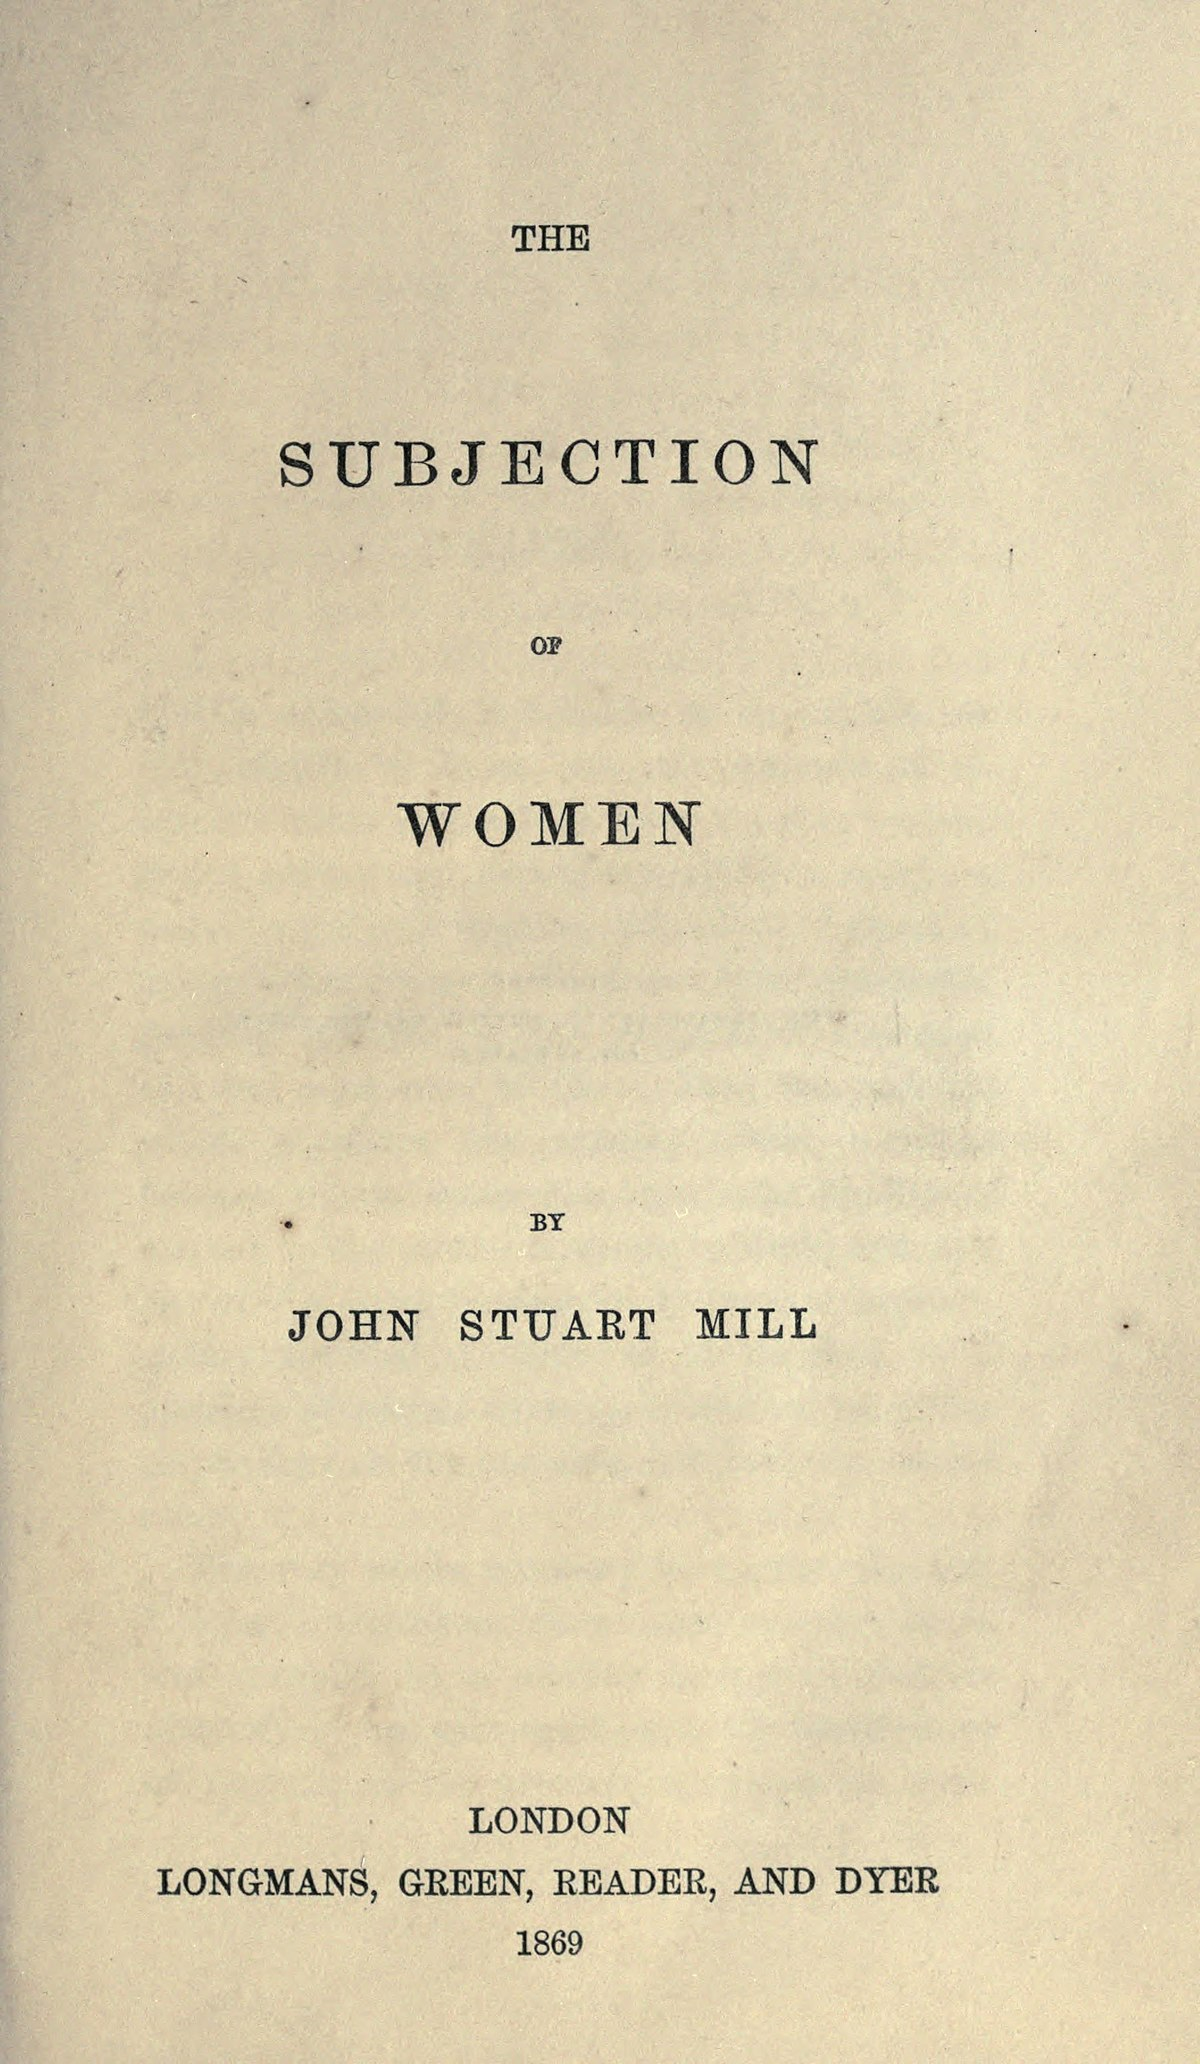 The Subjection of Women Summary